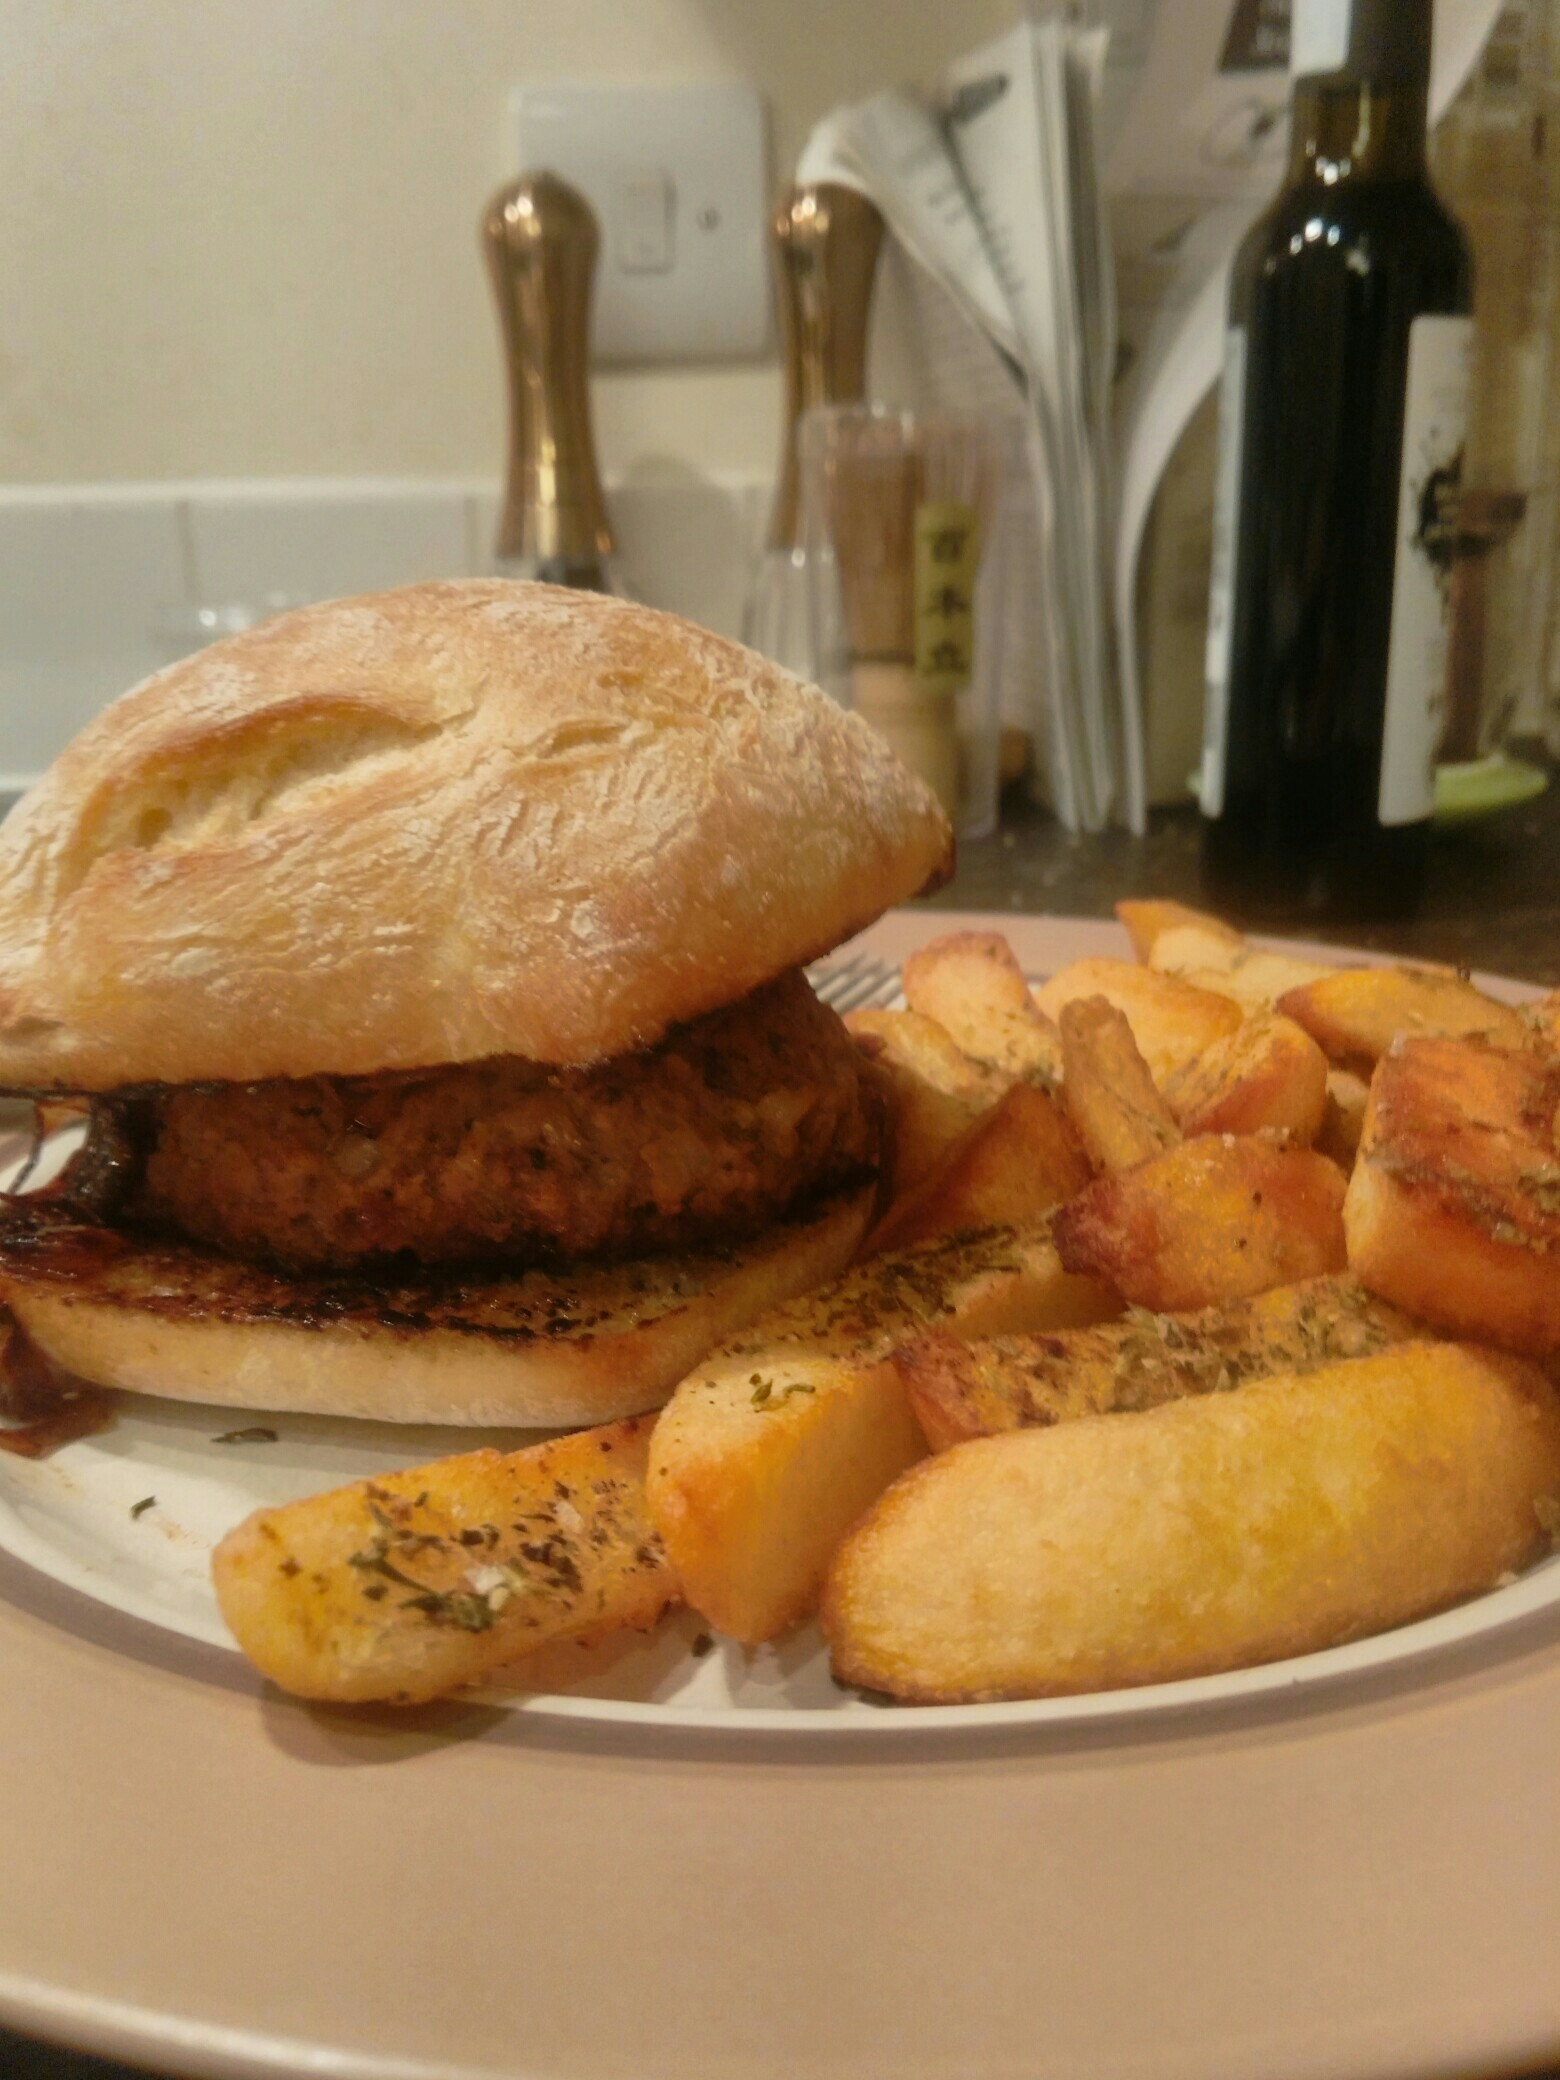 Burger in a bun and chips on a plate